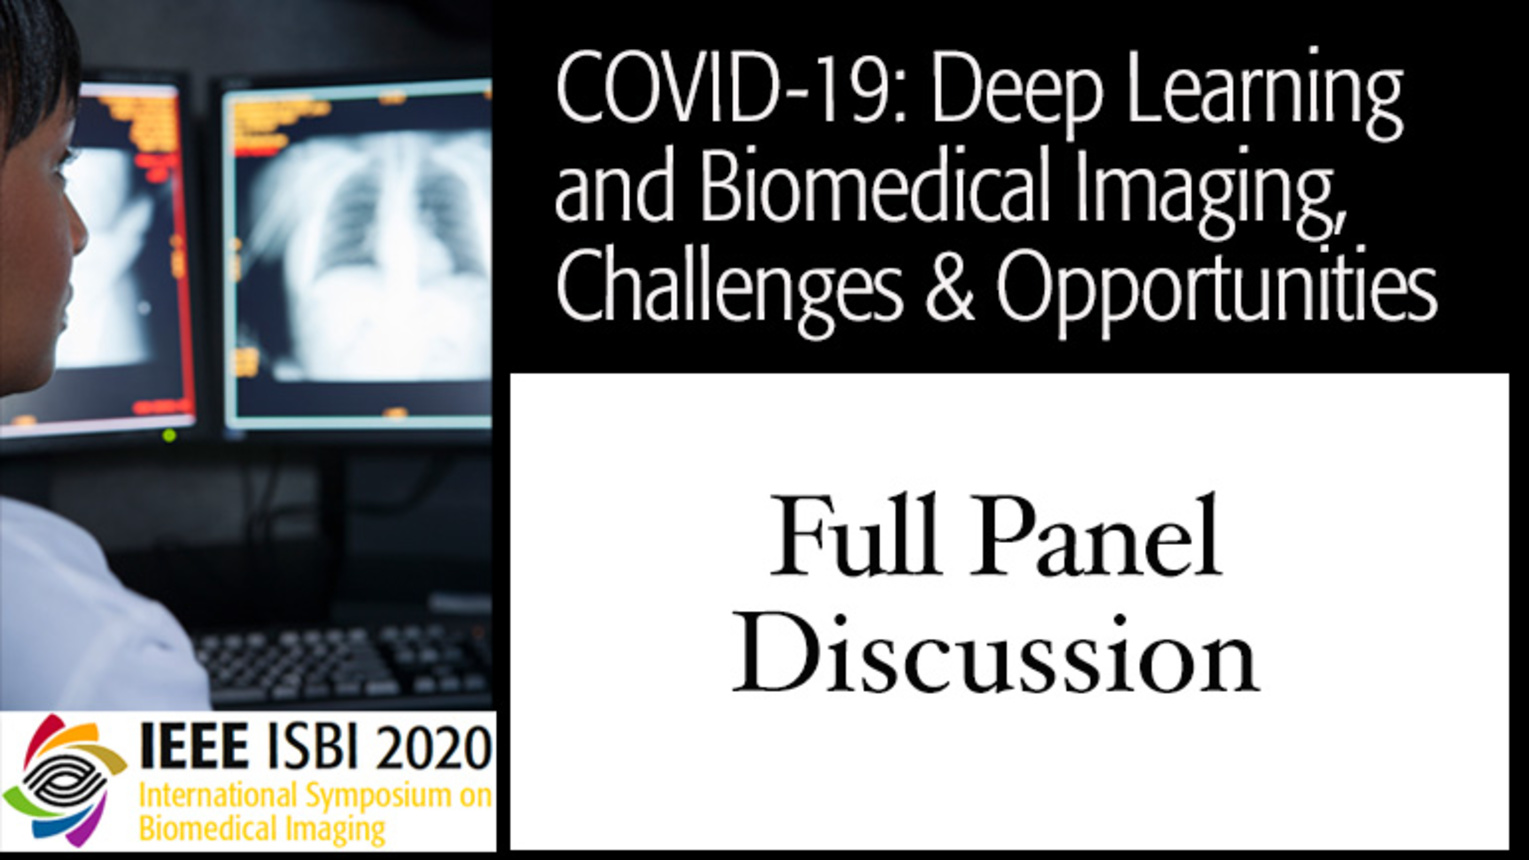 Panel Discussion - COVID-19, Deep Learning and Biomedical Imaging Panel